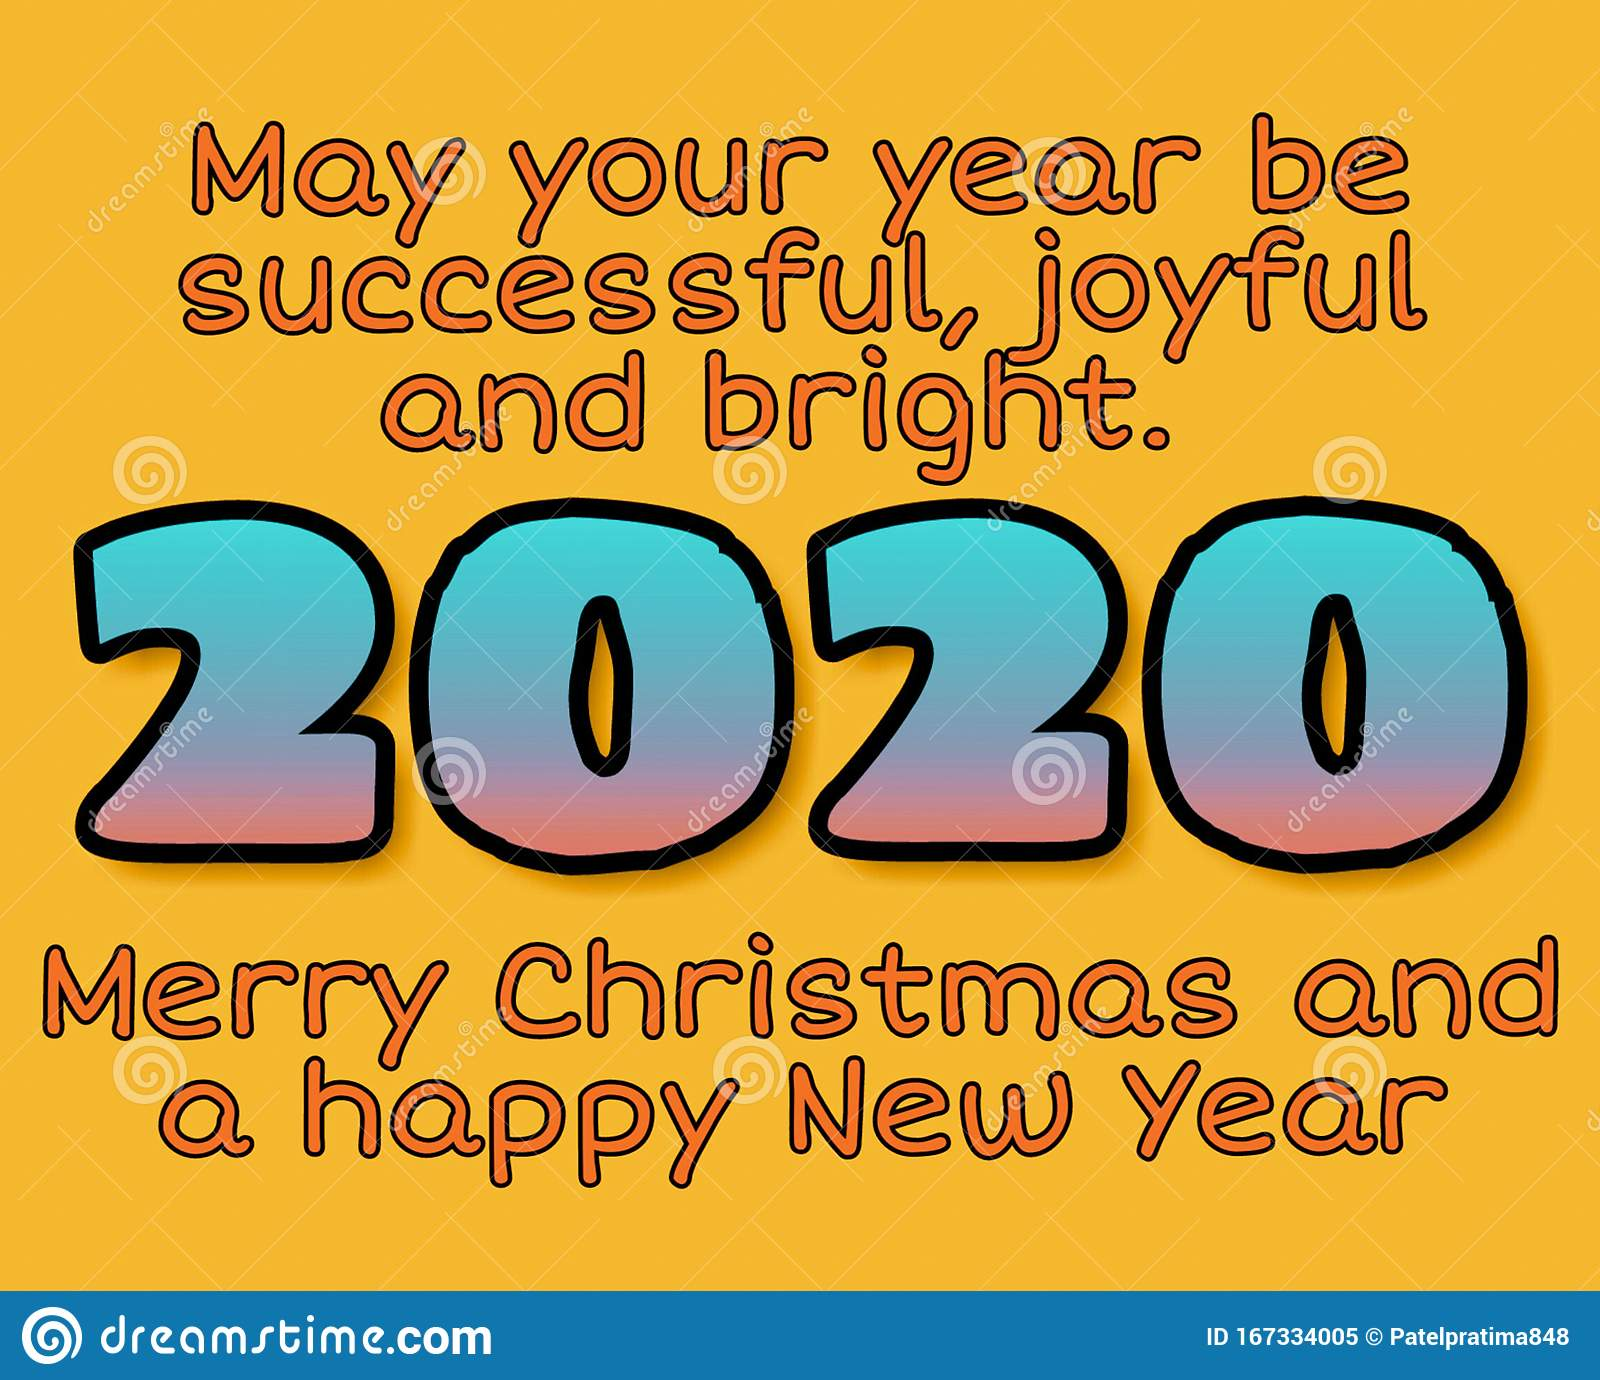 Merry Christmas And Happy New Year 2020 Wishes Greeting